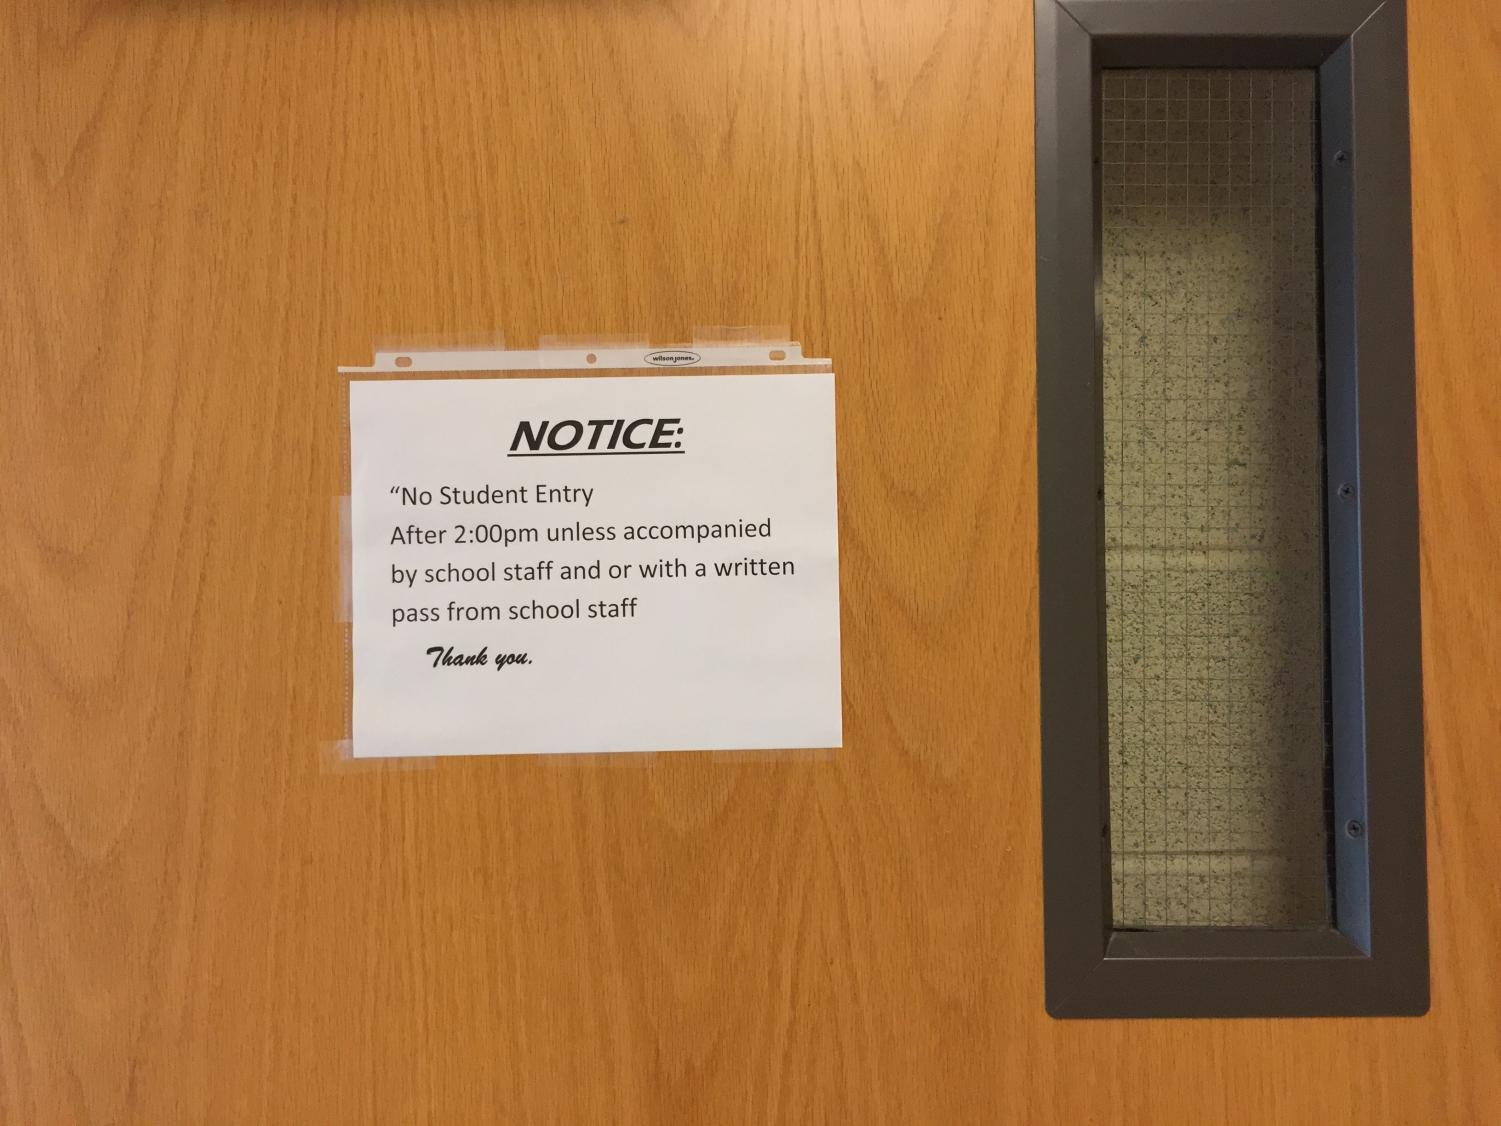 The administration left signs on doors throughout the hallway concerning after school hallway activity.